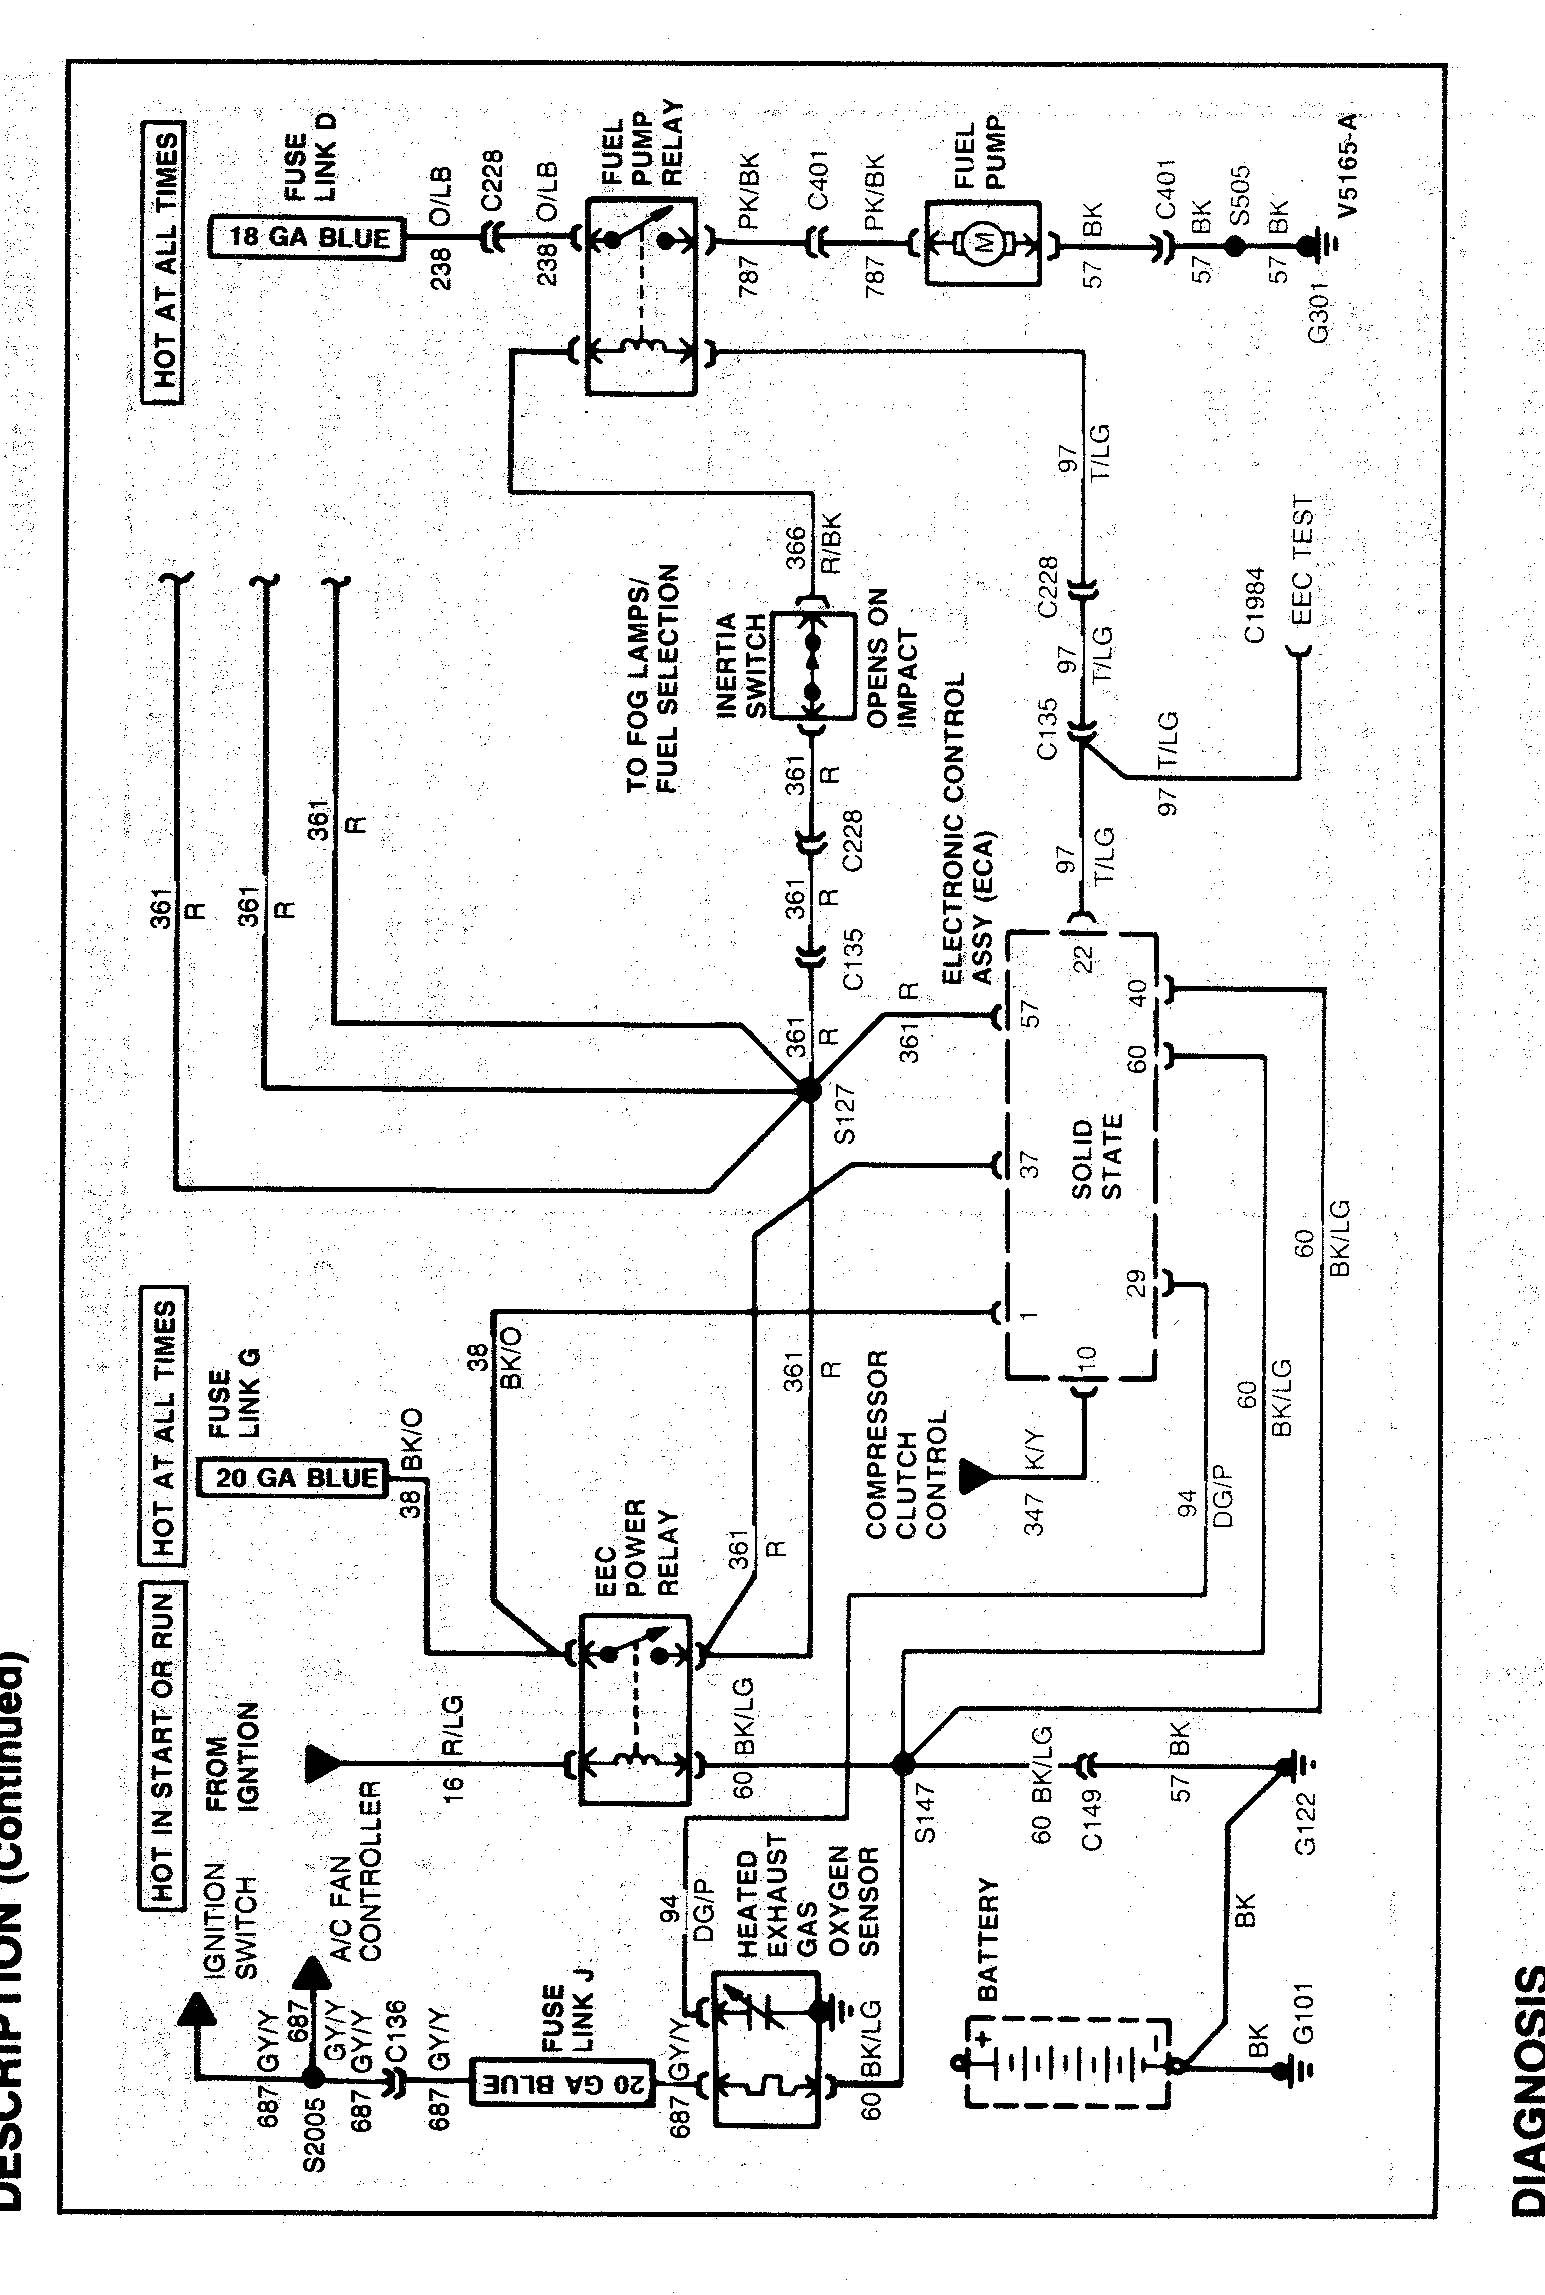 1928d1051592166 may electrical fuel pump but im not sure mustangfuelelectricaldiagram2 wiring diagram for 91 mustang fuel pump relay readingrat net ford fuel pump wiring diagram at soozxer.org